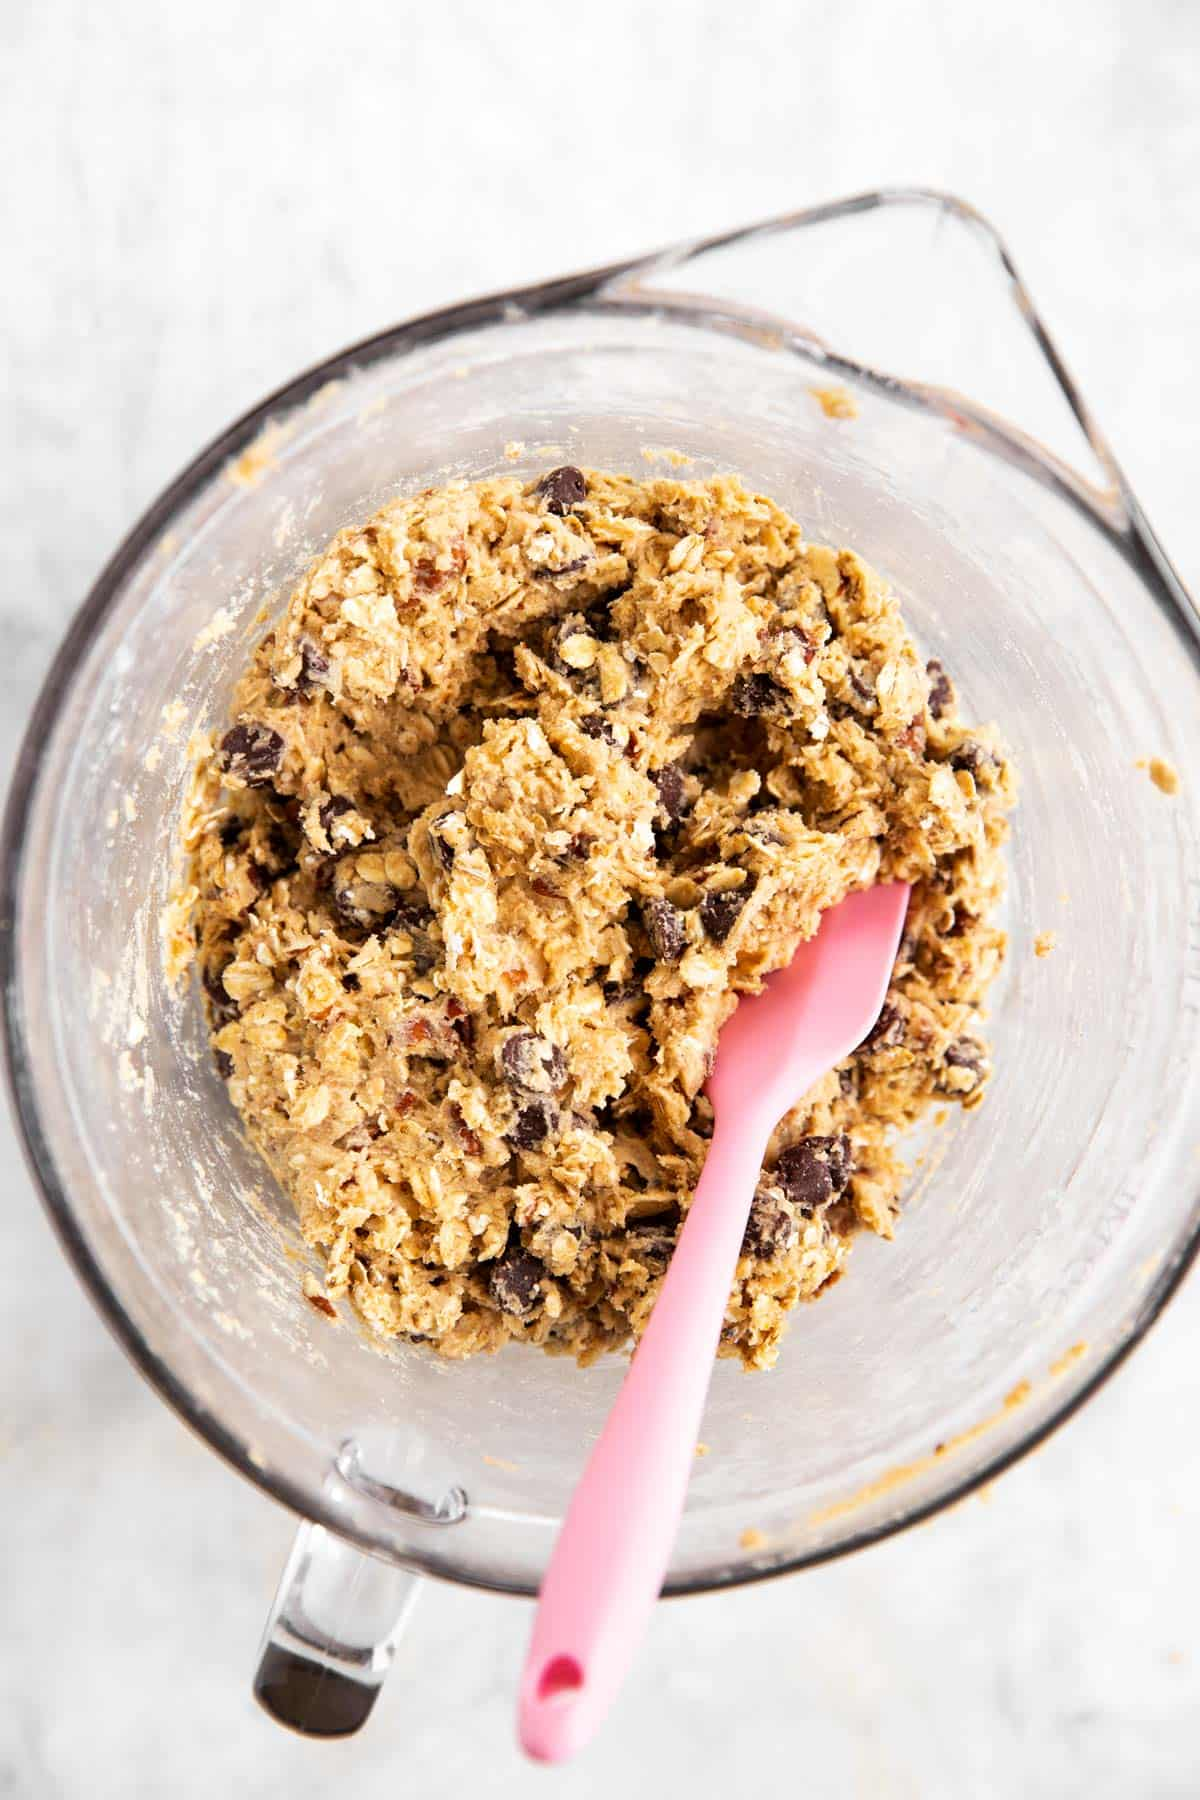 oatmeal chocolate chip cookie dough in glass bowl with pink spatula stuck in